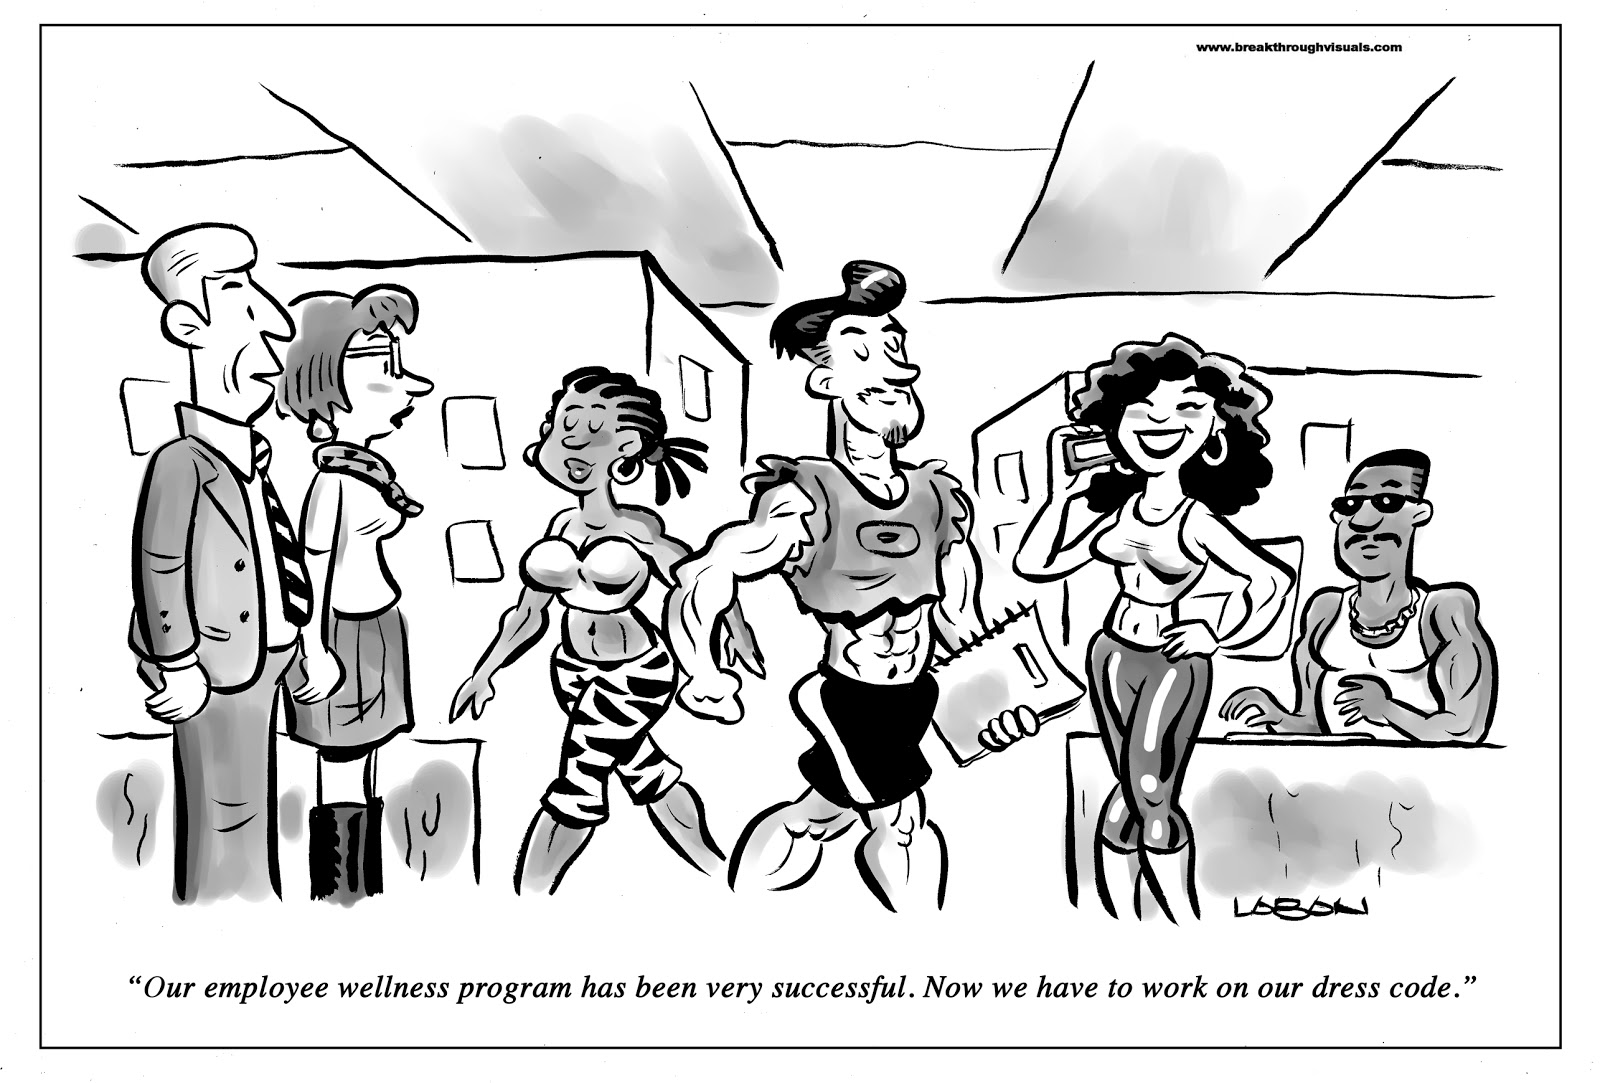 Employee wellness programs get decent results, as long as the workplace doesn't start smelling like a gym.